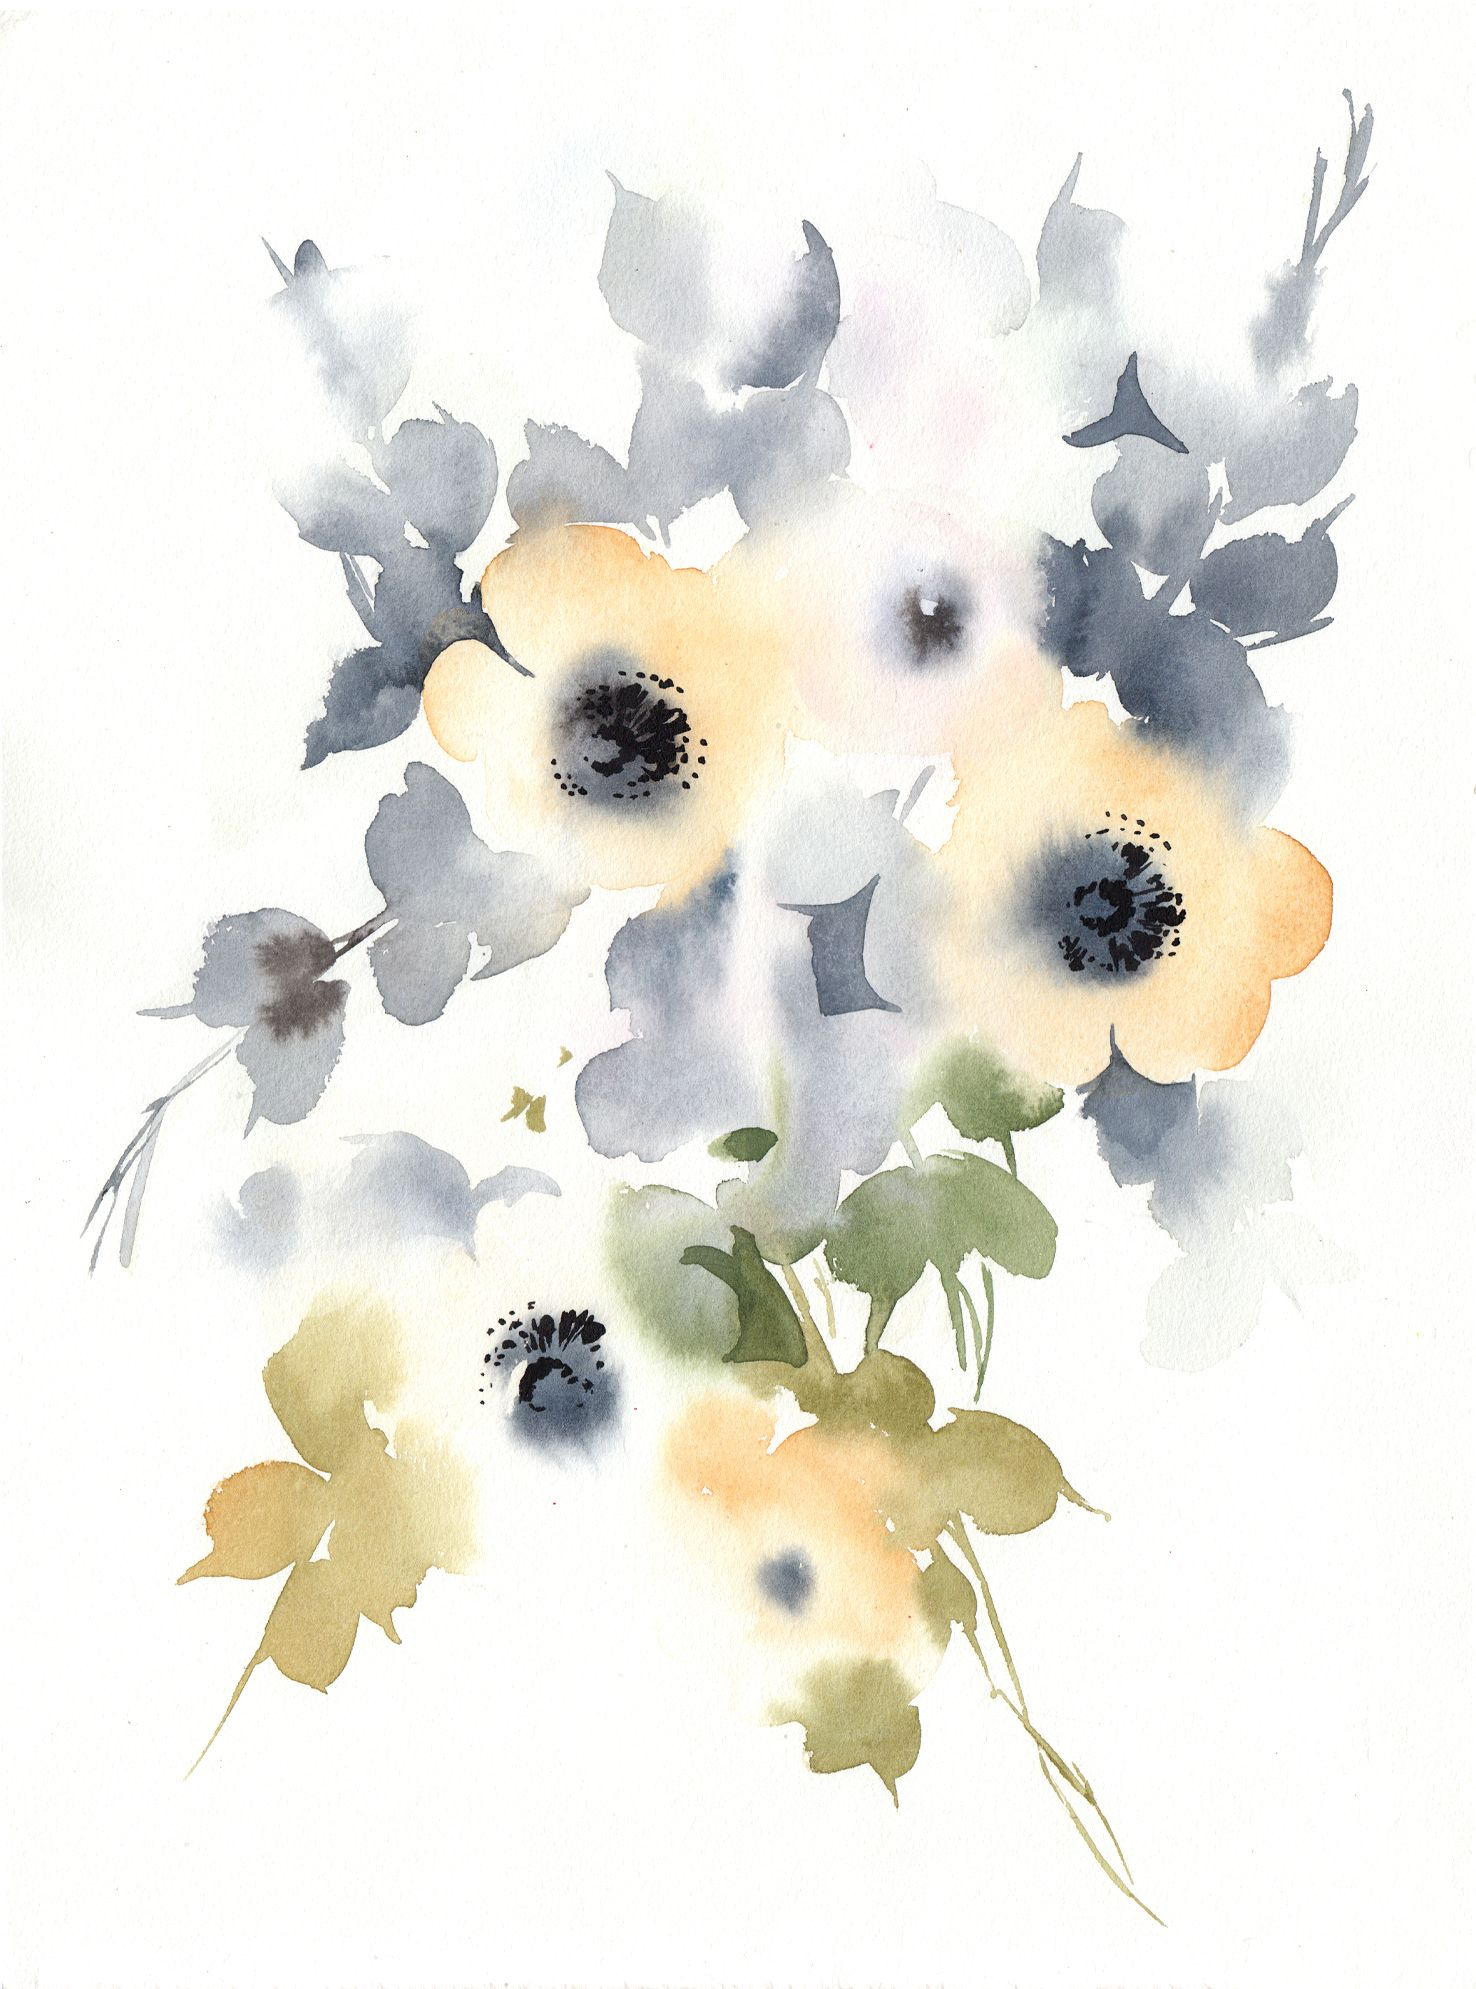 Printable Watercolor Yellow Anemone Flowers Wall Art Botanical Loose Flowers Wall Art Abstract Flowers Art Nursery Floral Wall Decor In 2020 Abstract Floral Art Abstract Flowers Botanical Illustration Watercolor